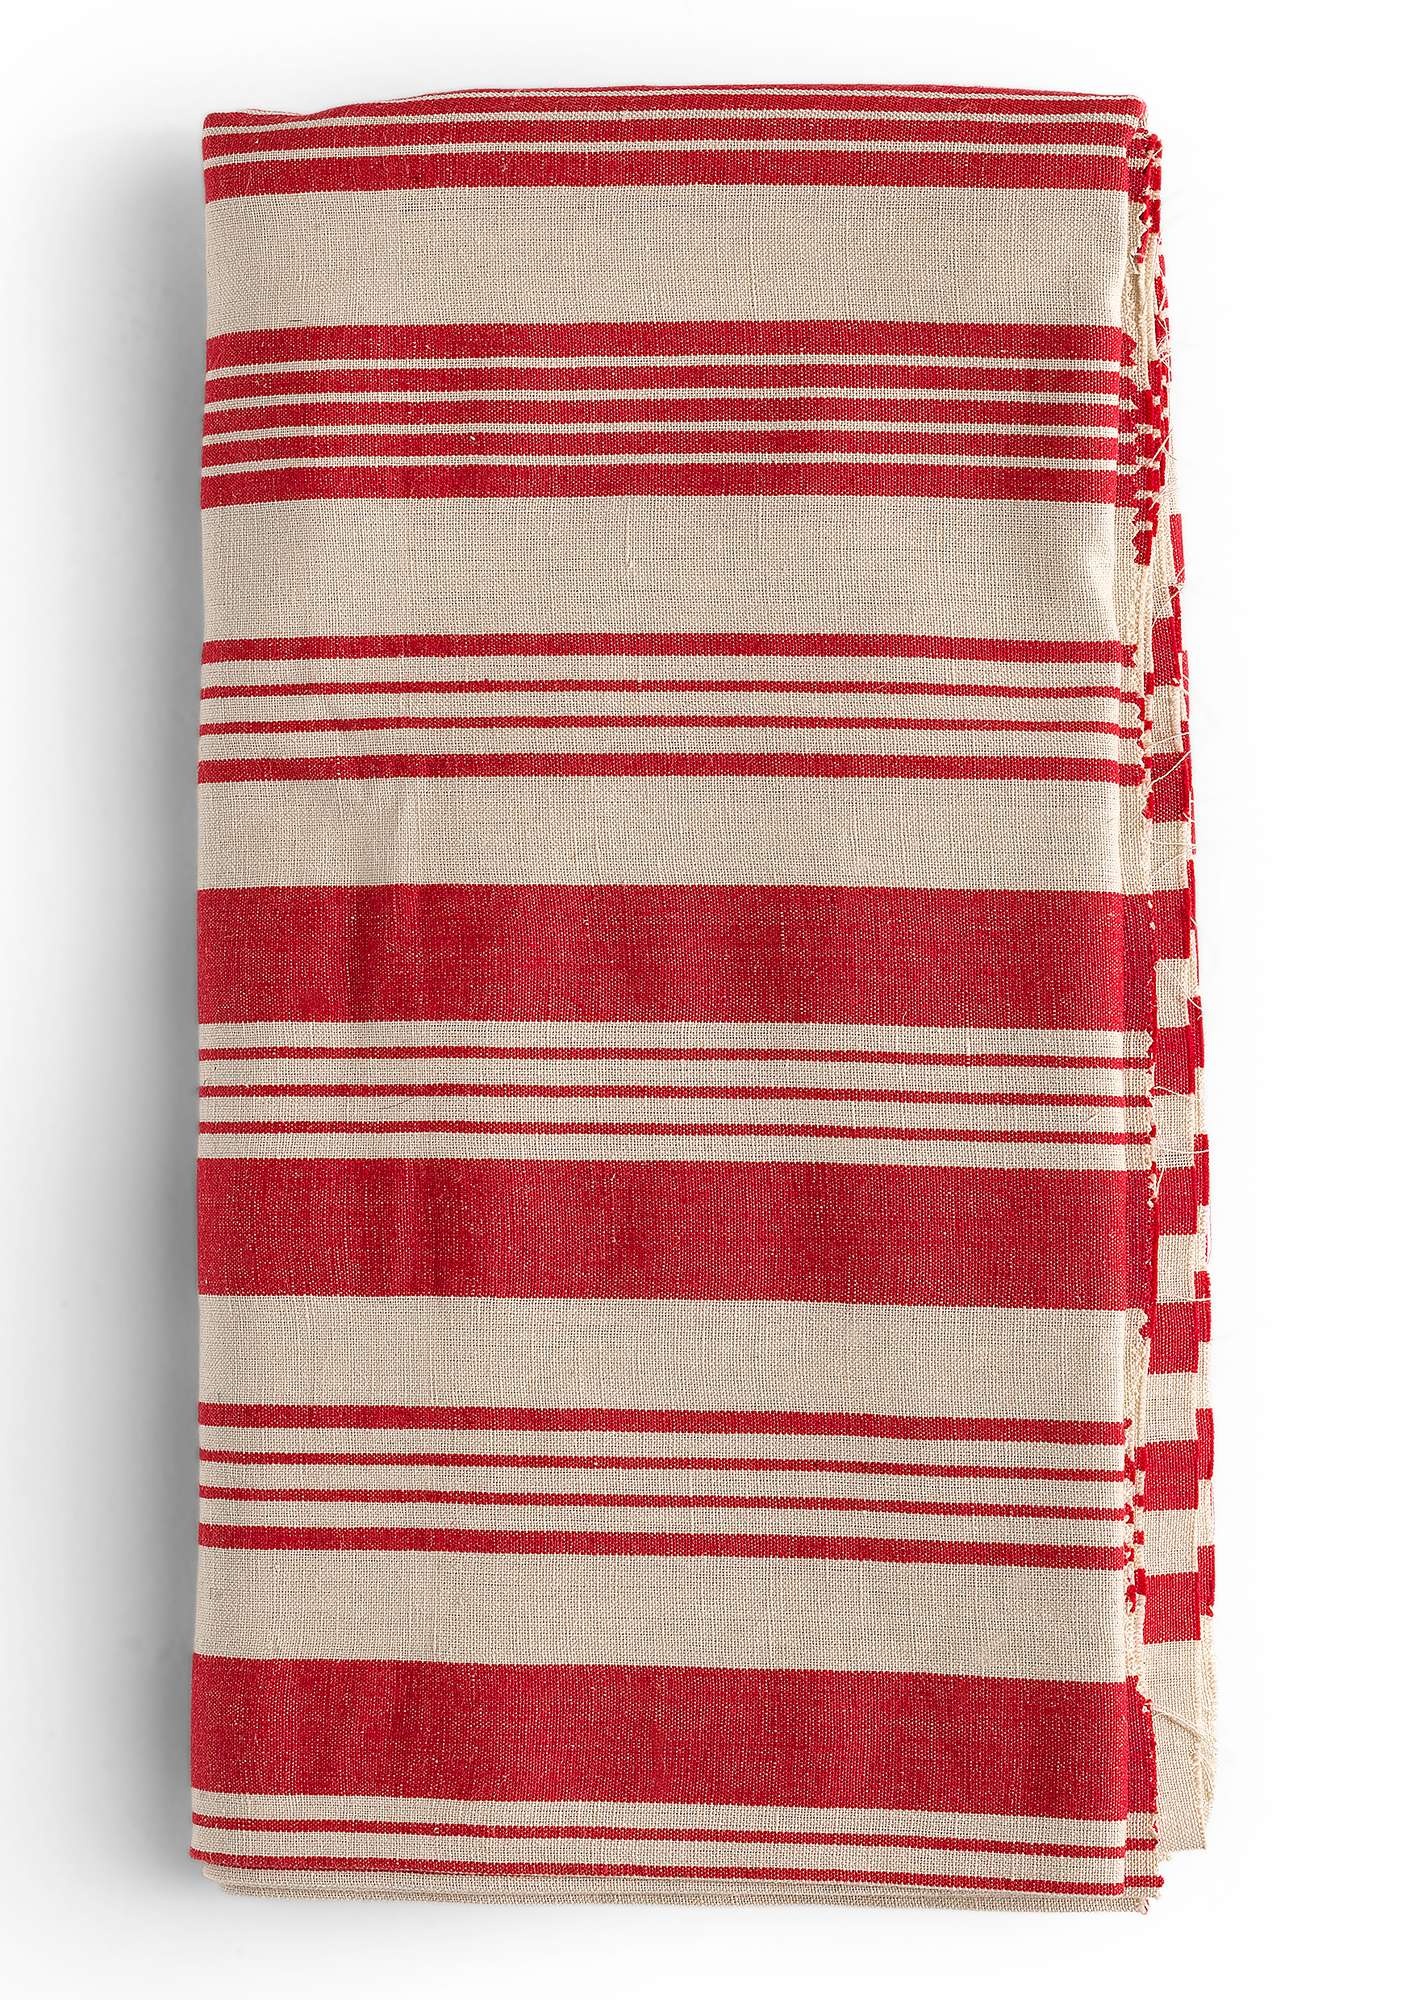 """Bolster"" yard goods in cotton/linen bright red"